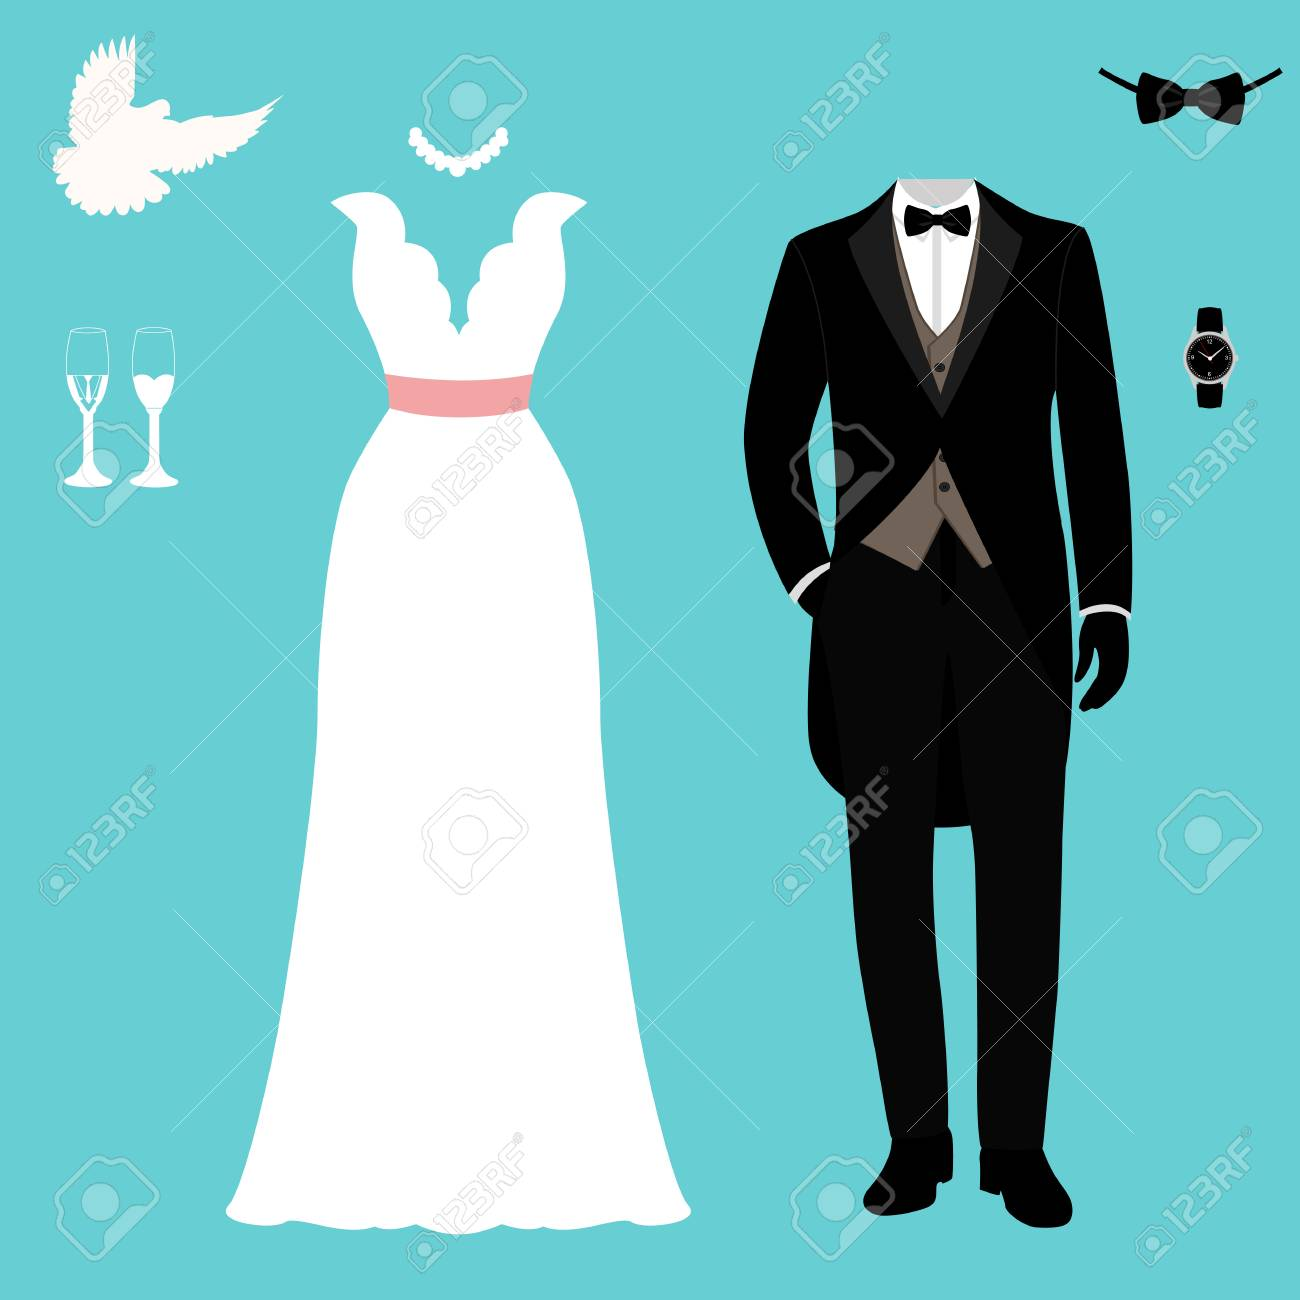 Wedding Card With The Clothes Of The Bride And Groom. Wedding ...